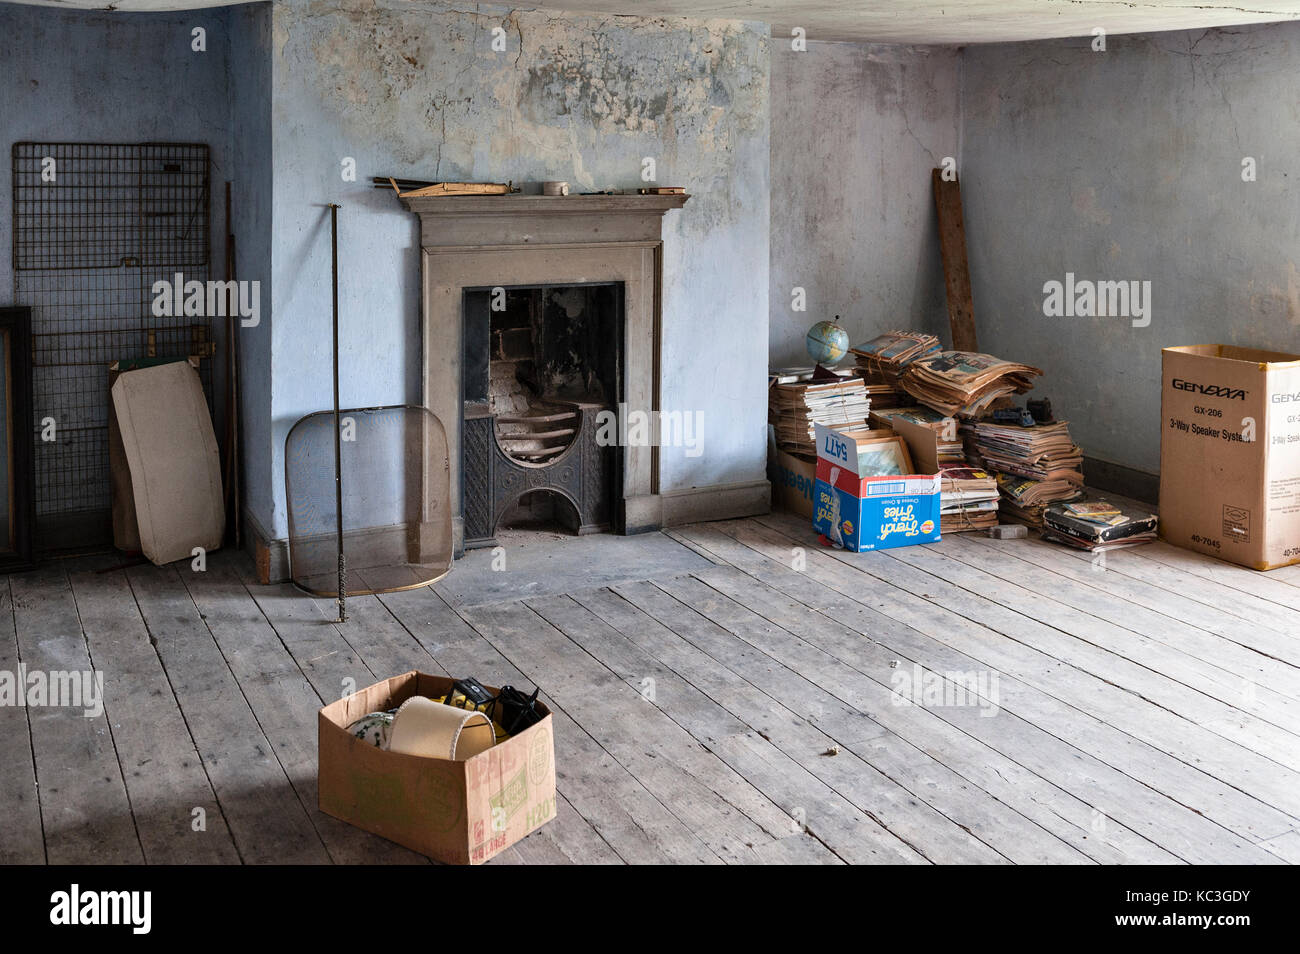 UK. An empty room in an old house awaiting sale and renovation - Stock Image